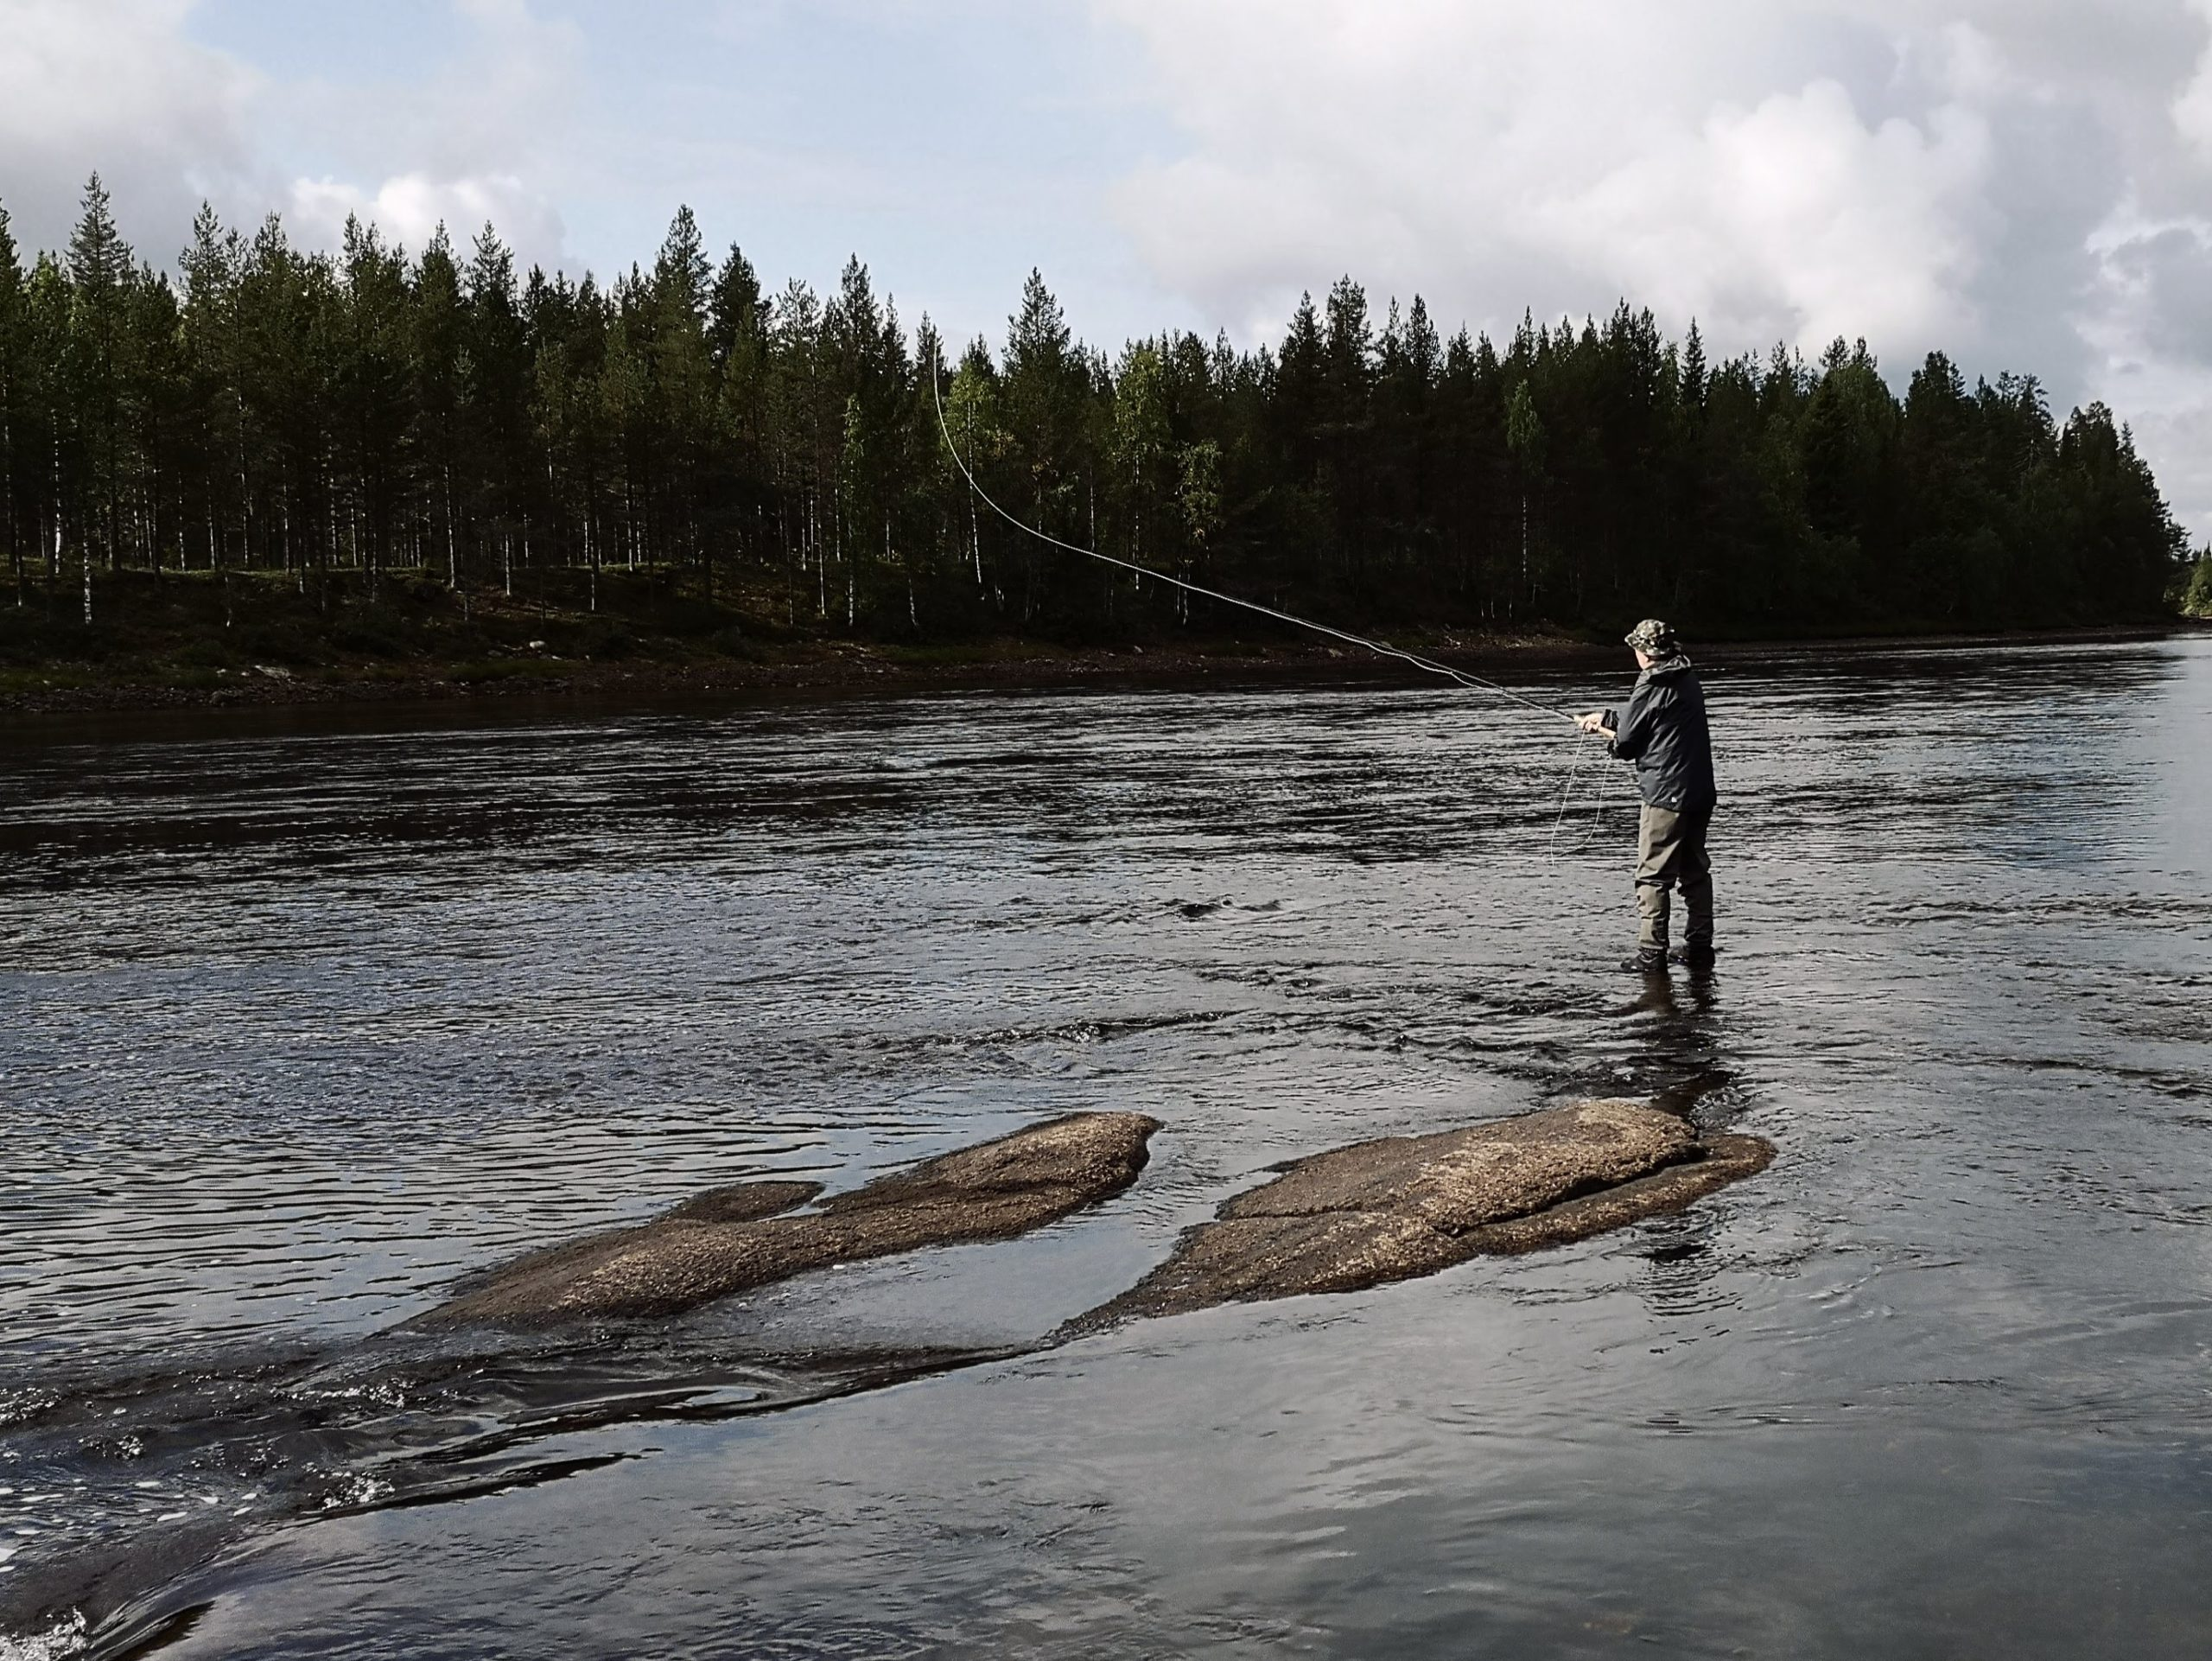 Fly fish on border line of Finland and Sweden